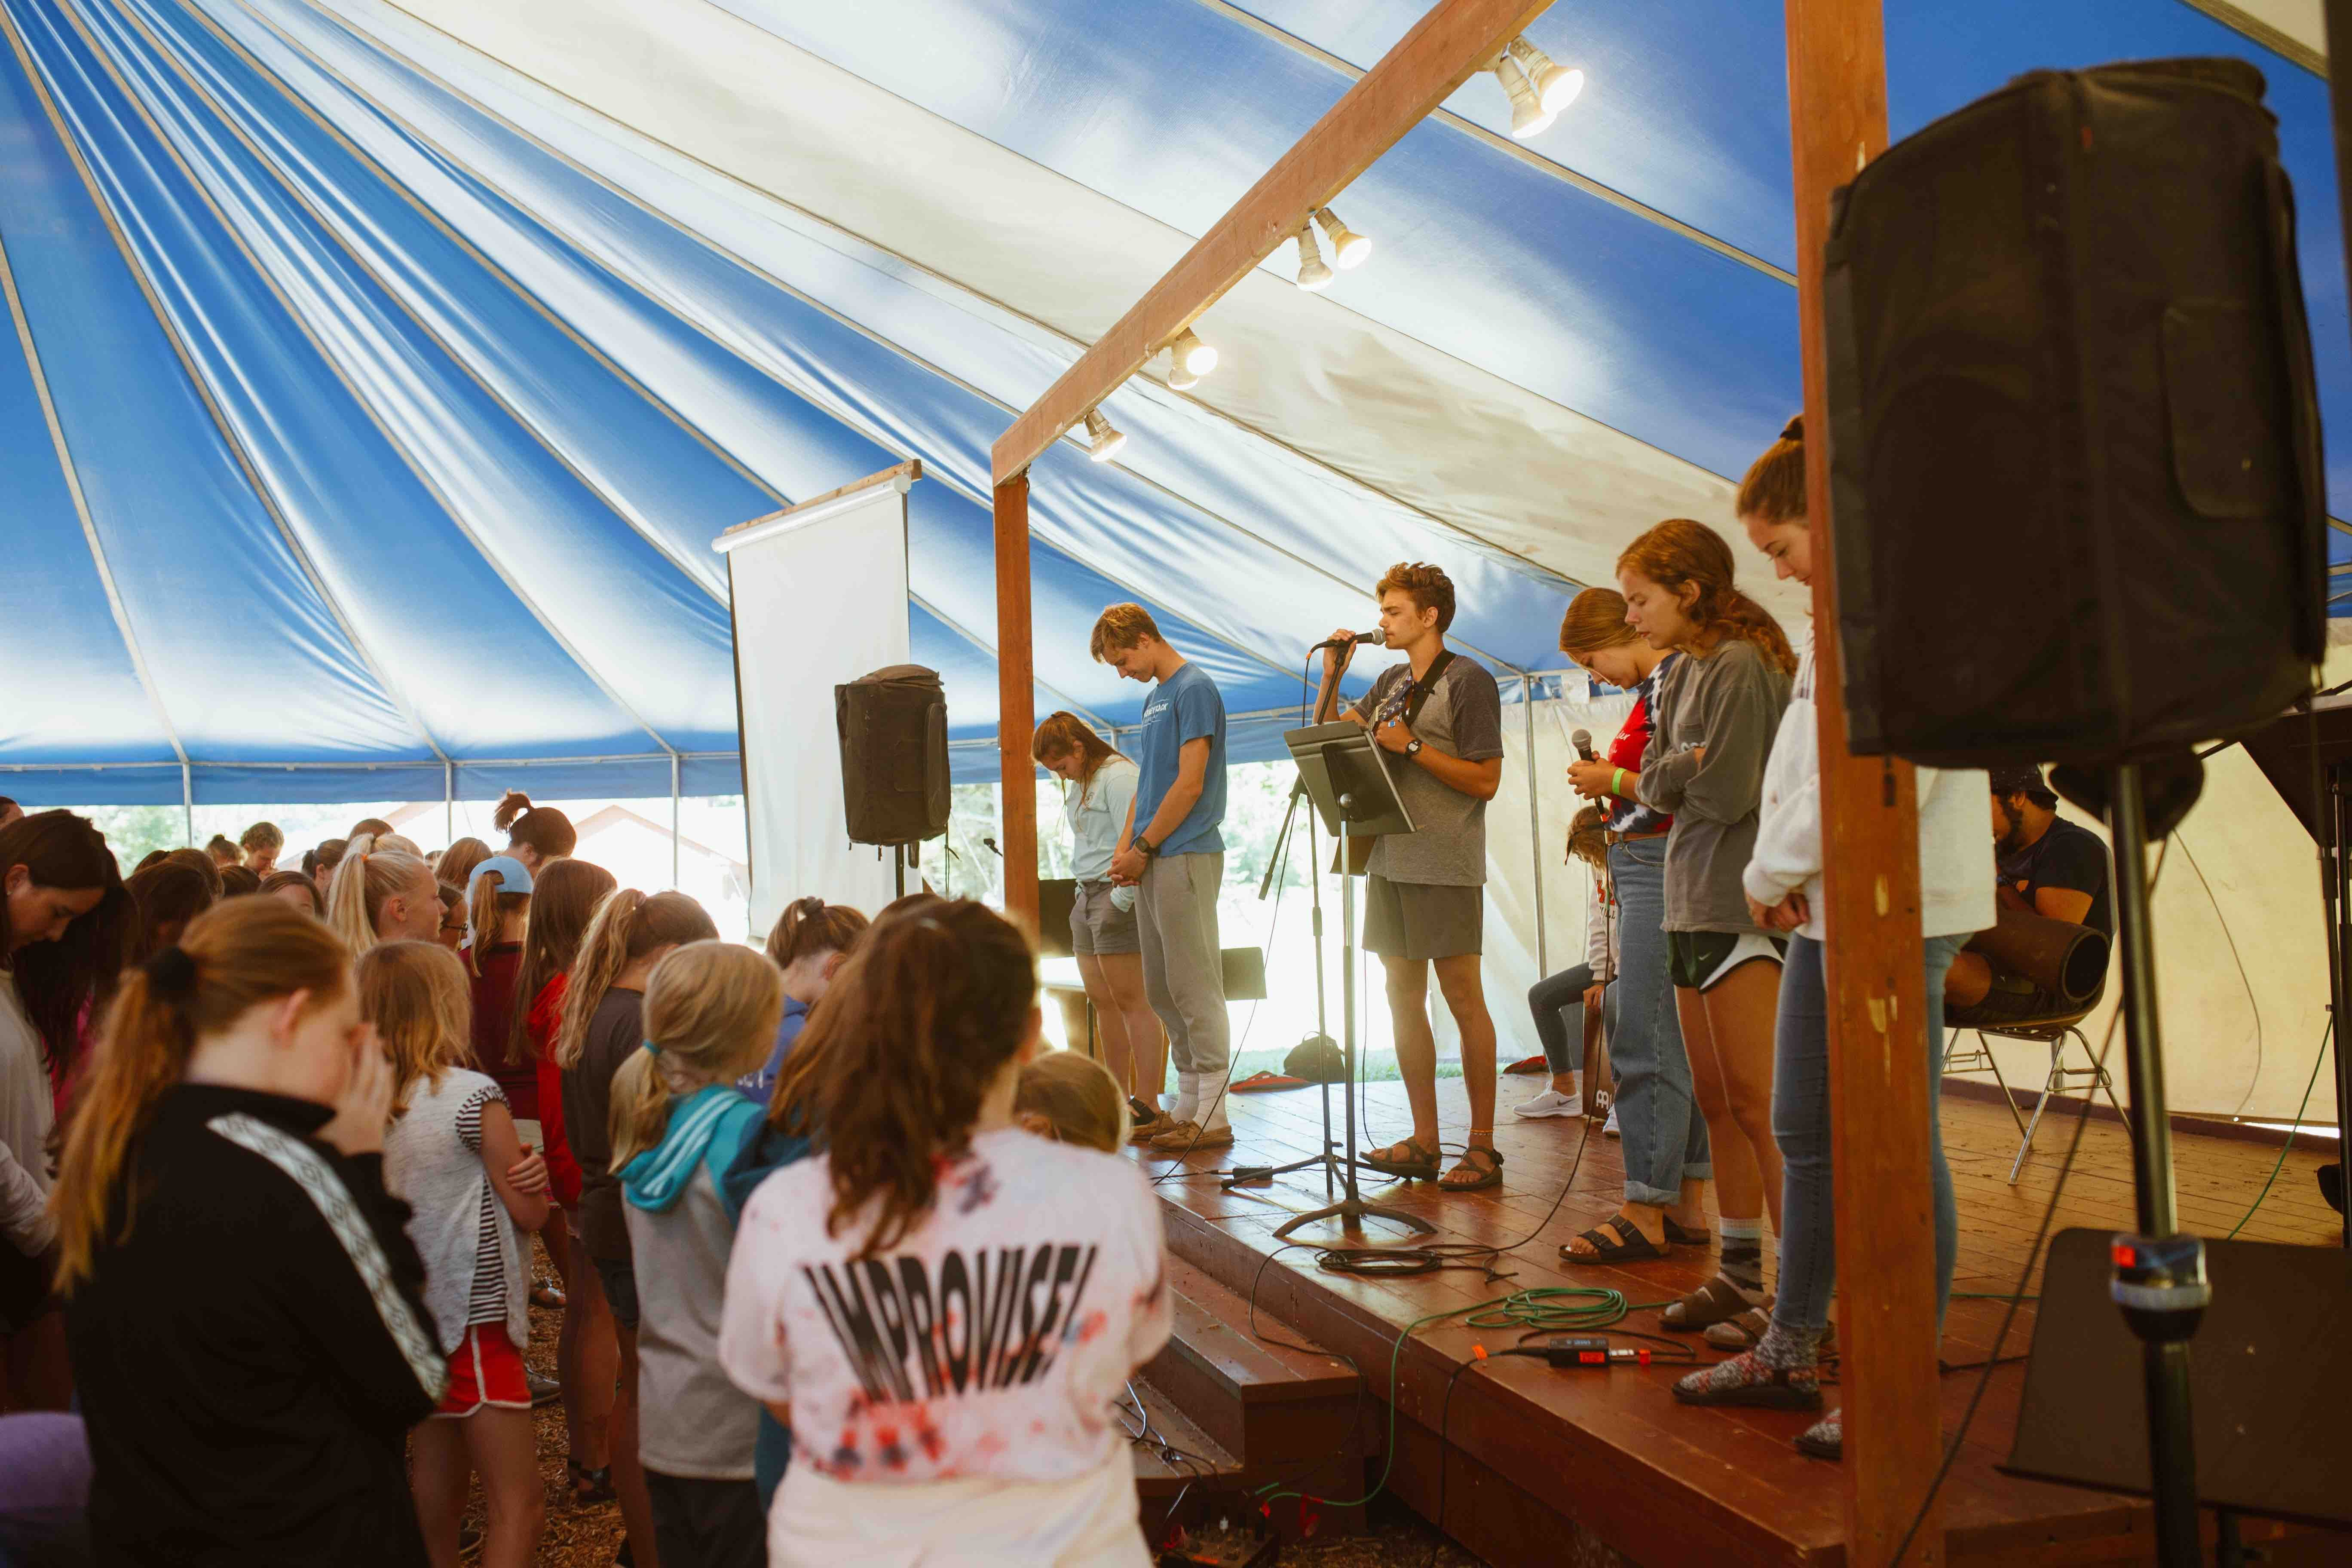 Our third to eighth graders worship in the blue and white tent and are led by cabin leaders.